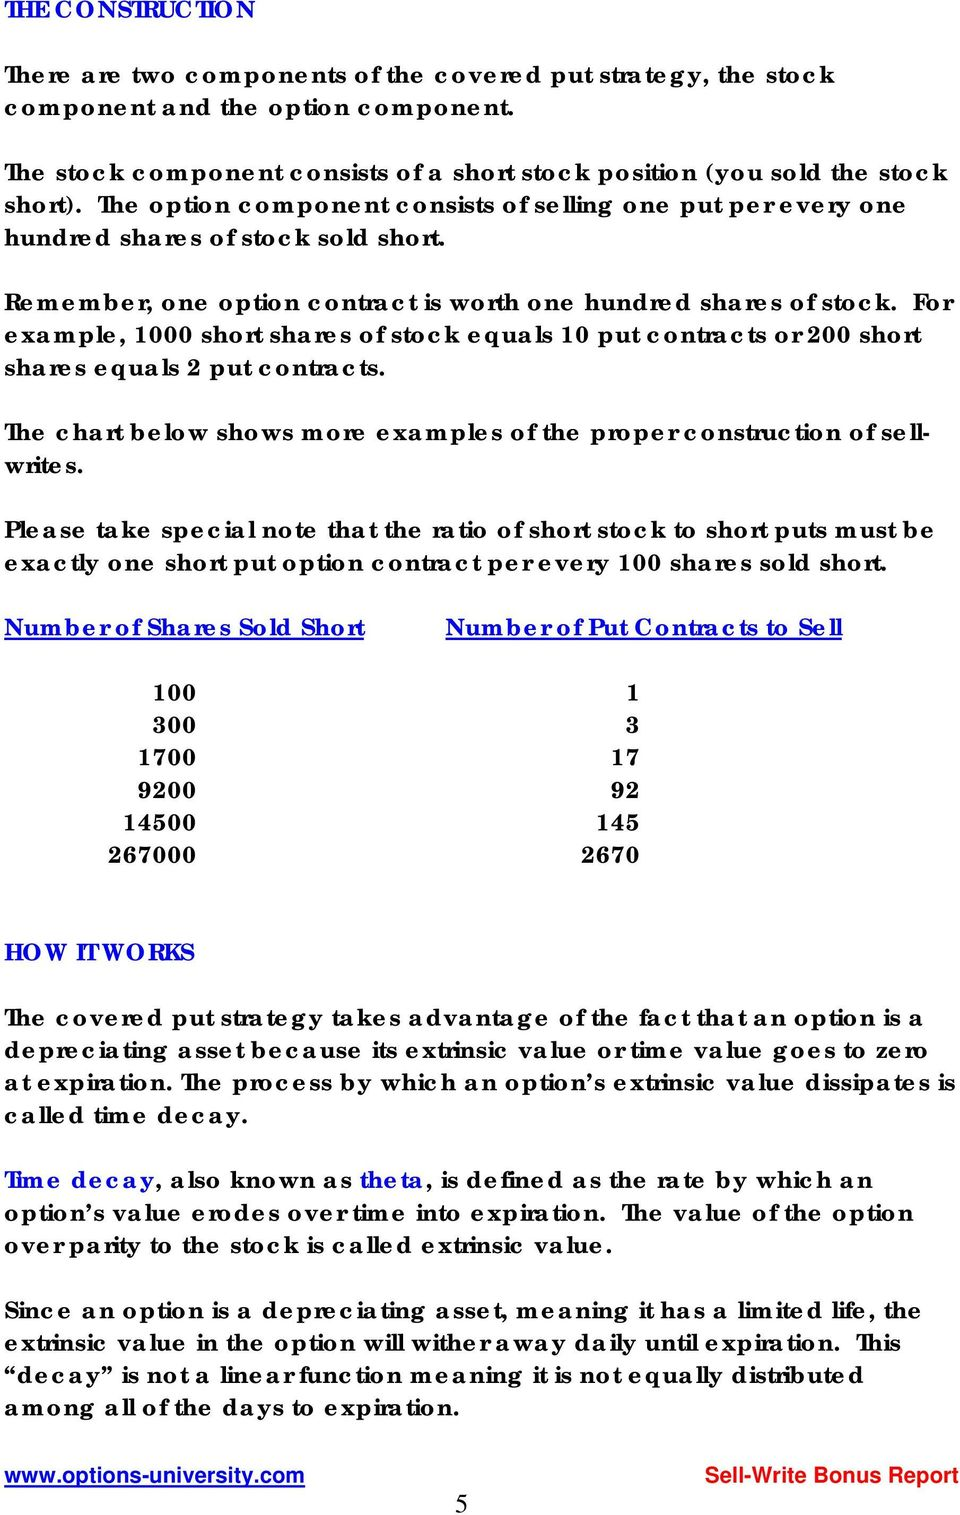 For example, 1000 short shares of stock equals 10 put contracts or 200 short shares equals 2 put contracts. The chart below shows more examples of the proper construction of sellwrites.